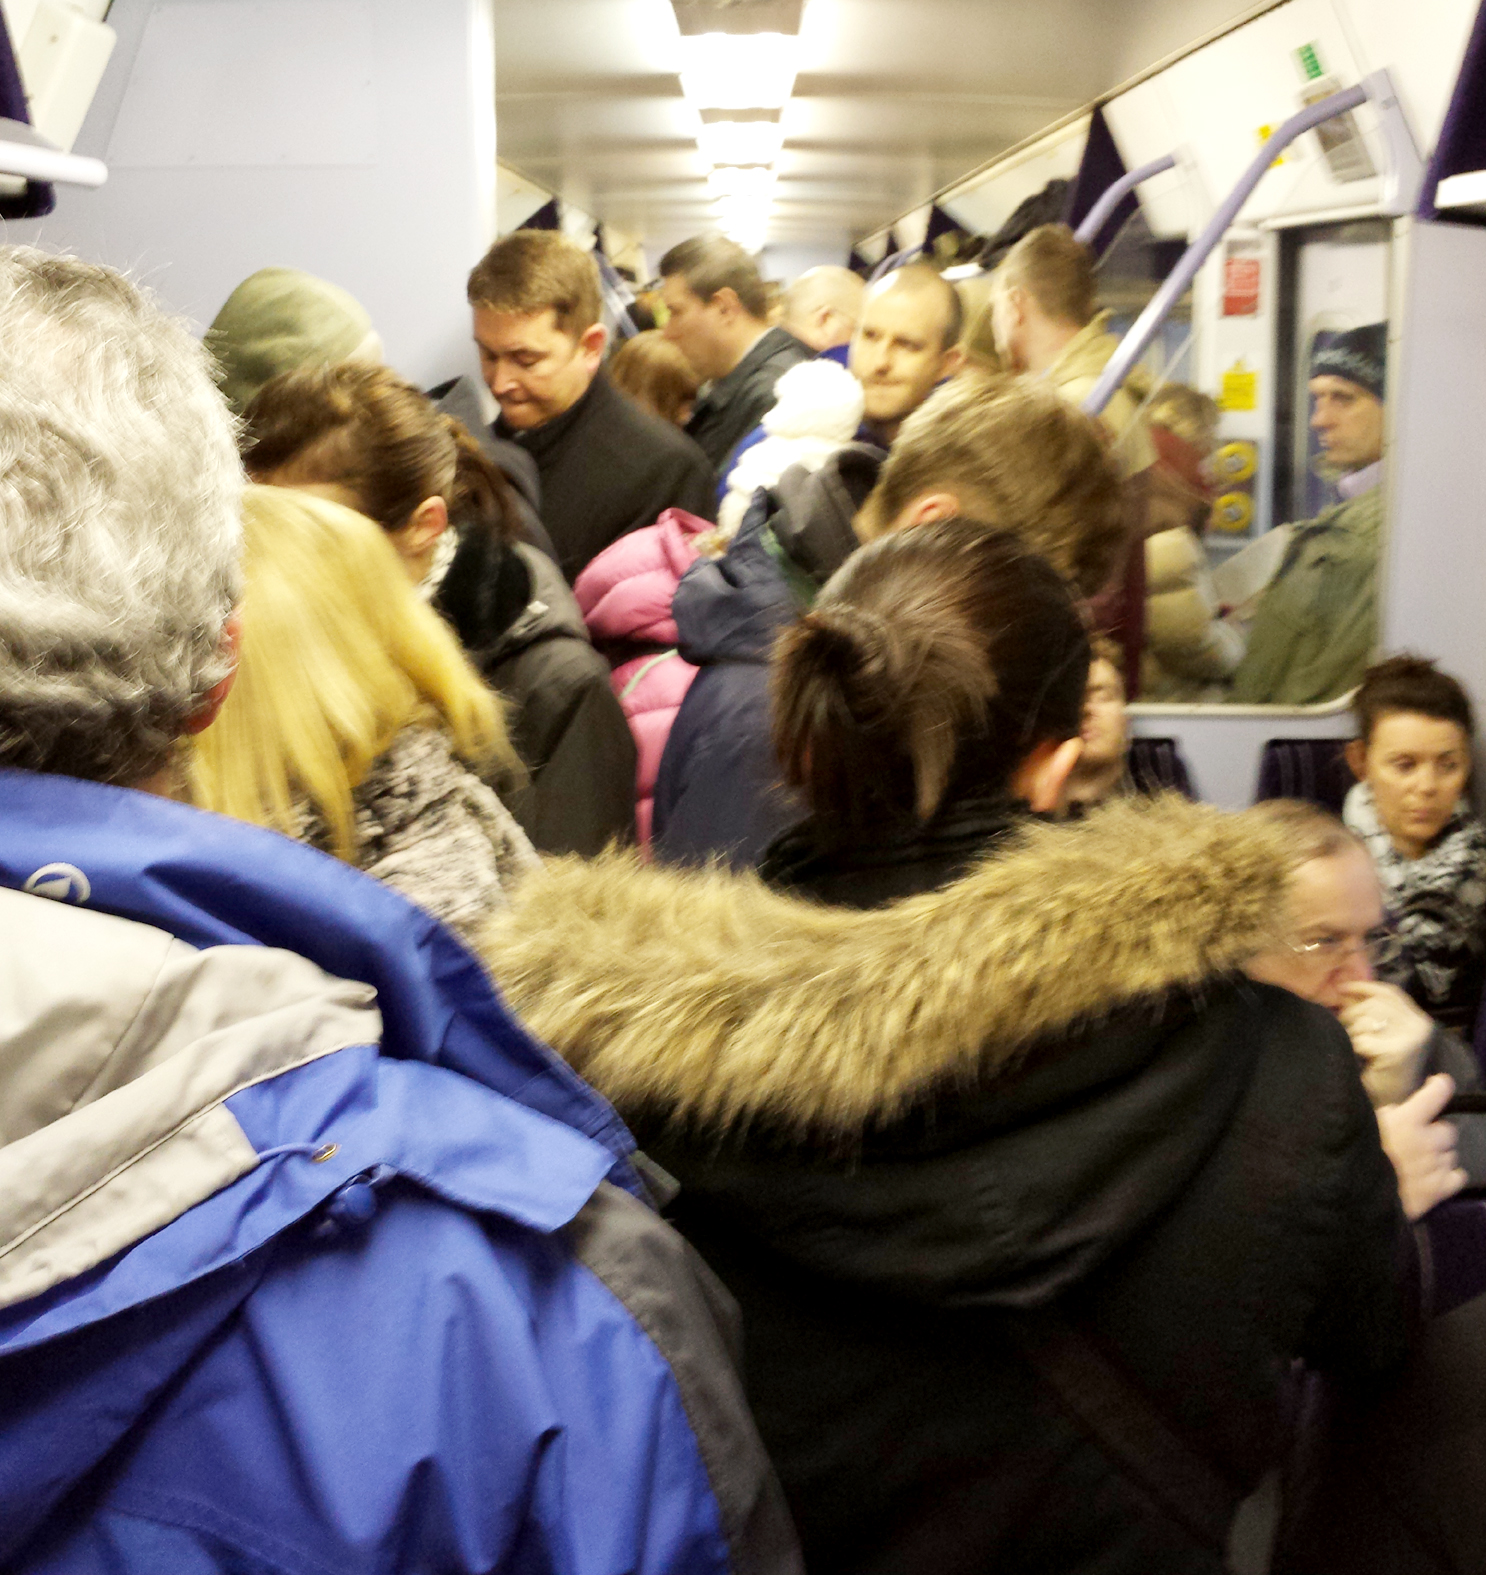 'Bolton commuter trains are worse than cattle trucks'